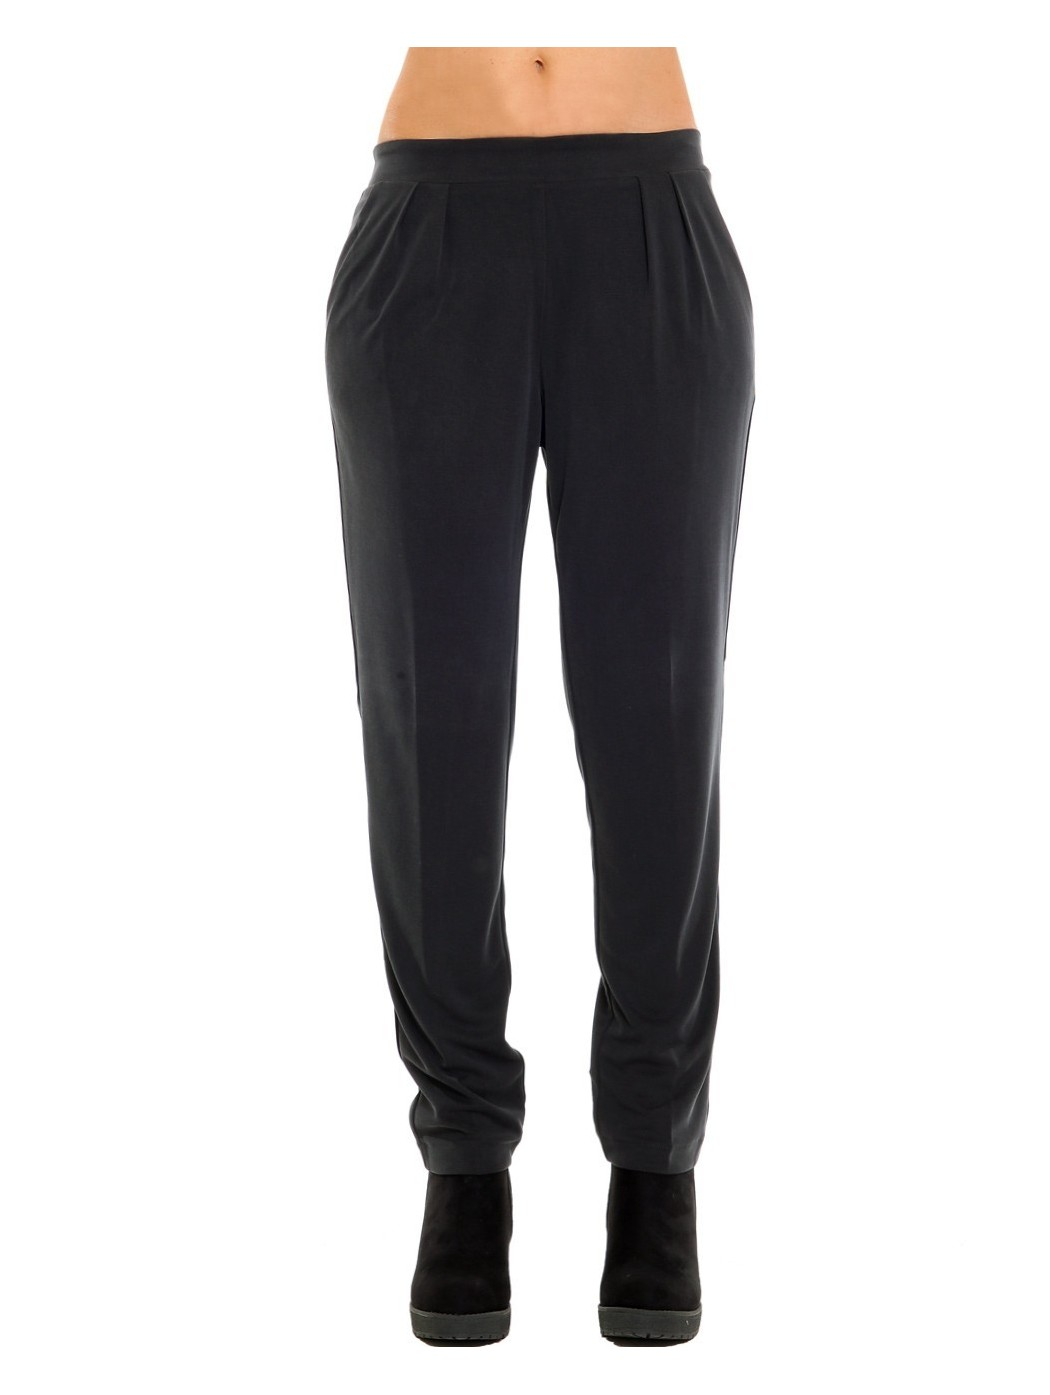 Paz Torras trousers